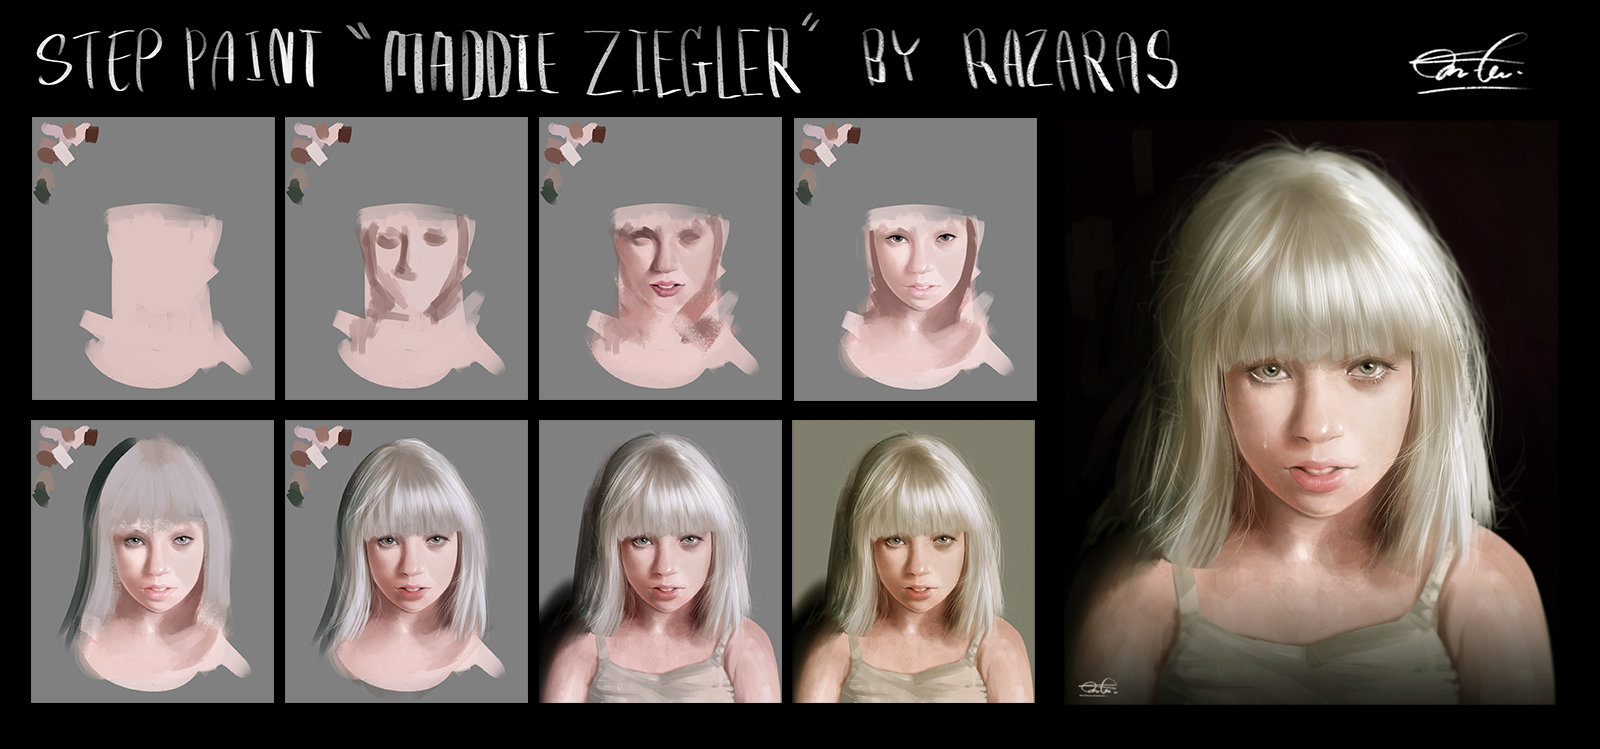 Kittichai reaungchaichan how to paint maddie ziegle 2